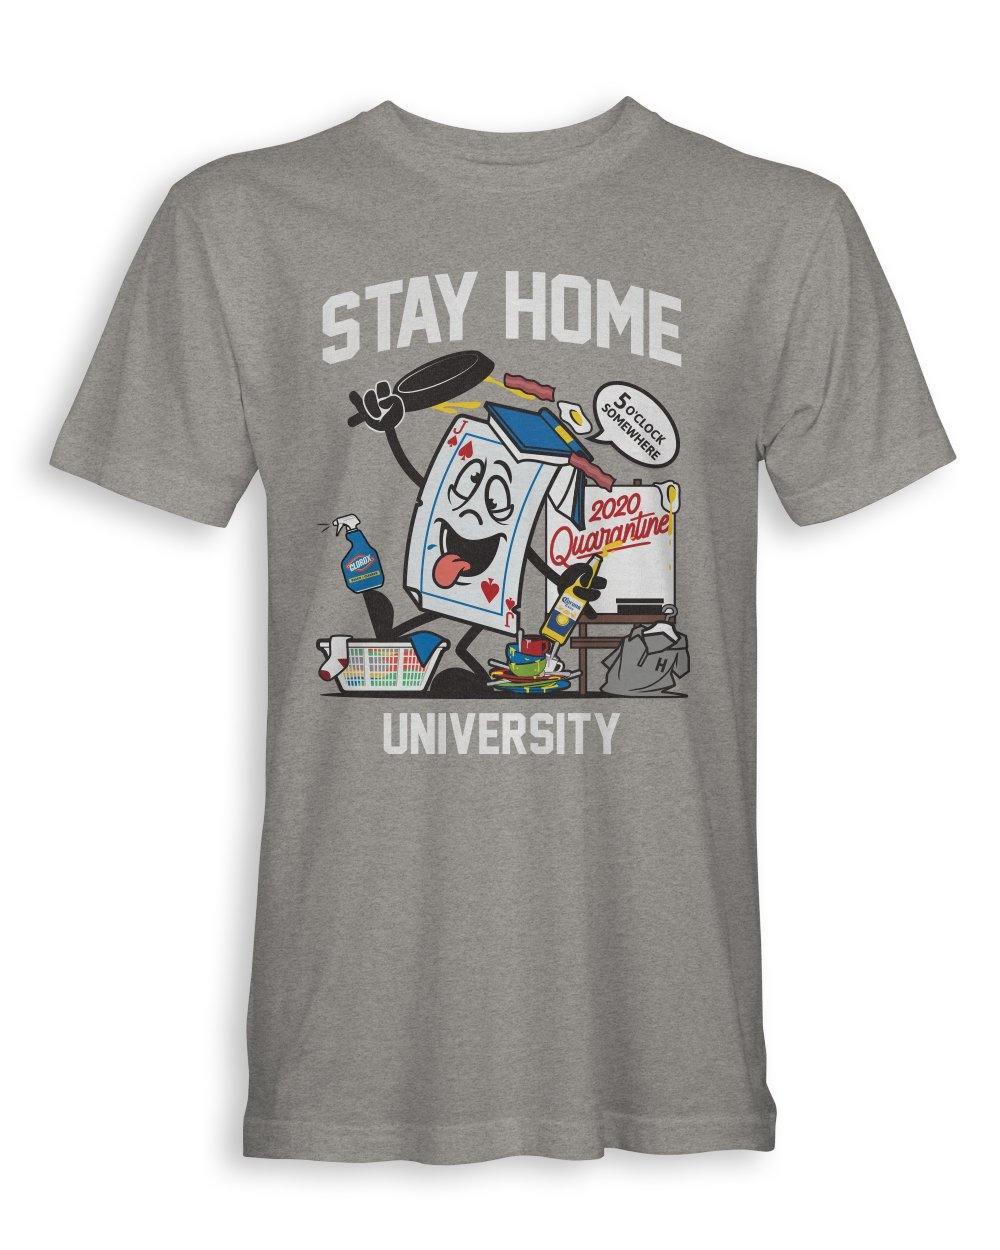 STAY HOME UNIVERSITY - UNISEX TEE - Shops by Green Gorilla